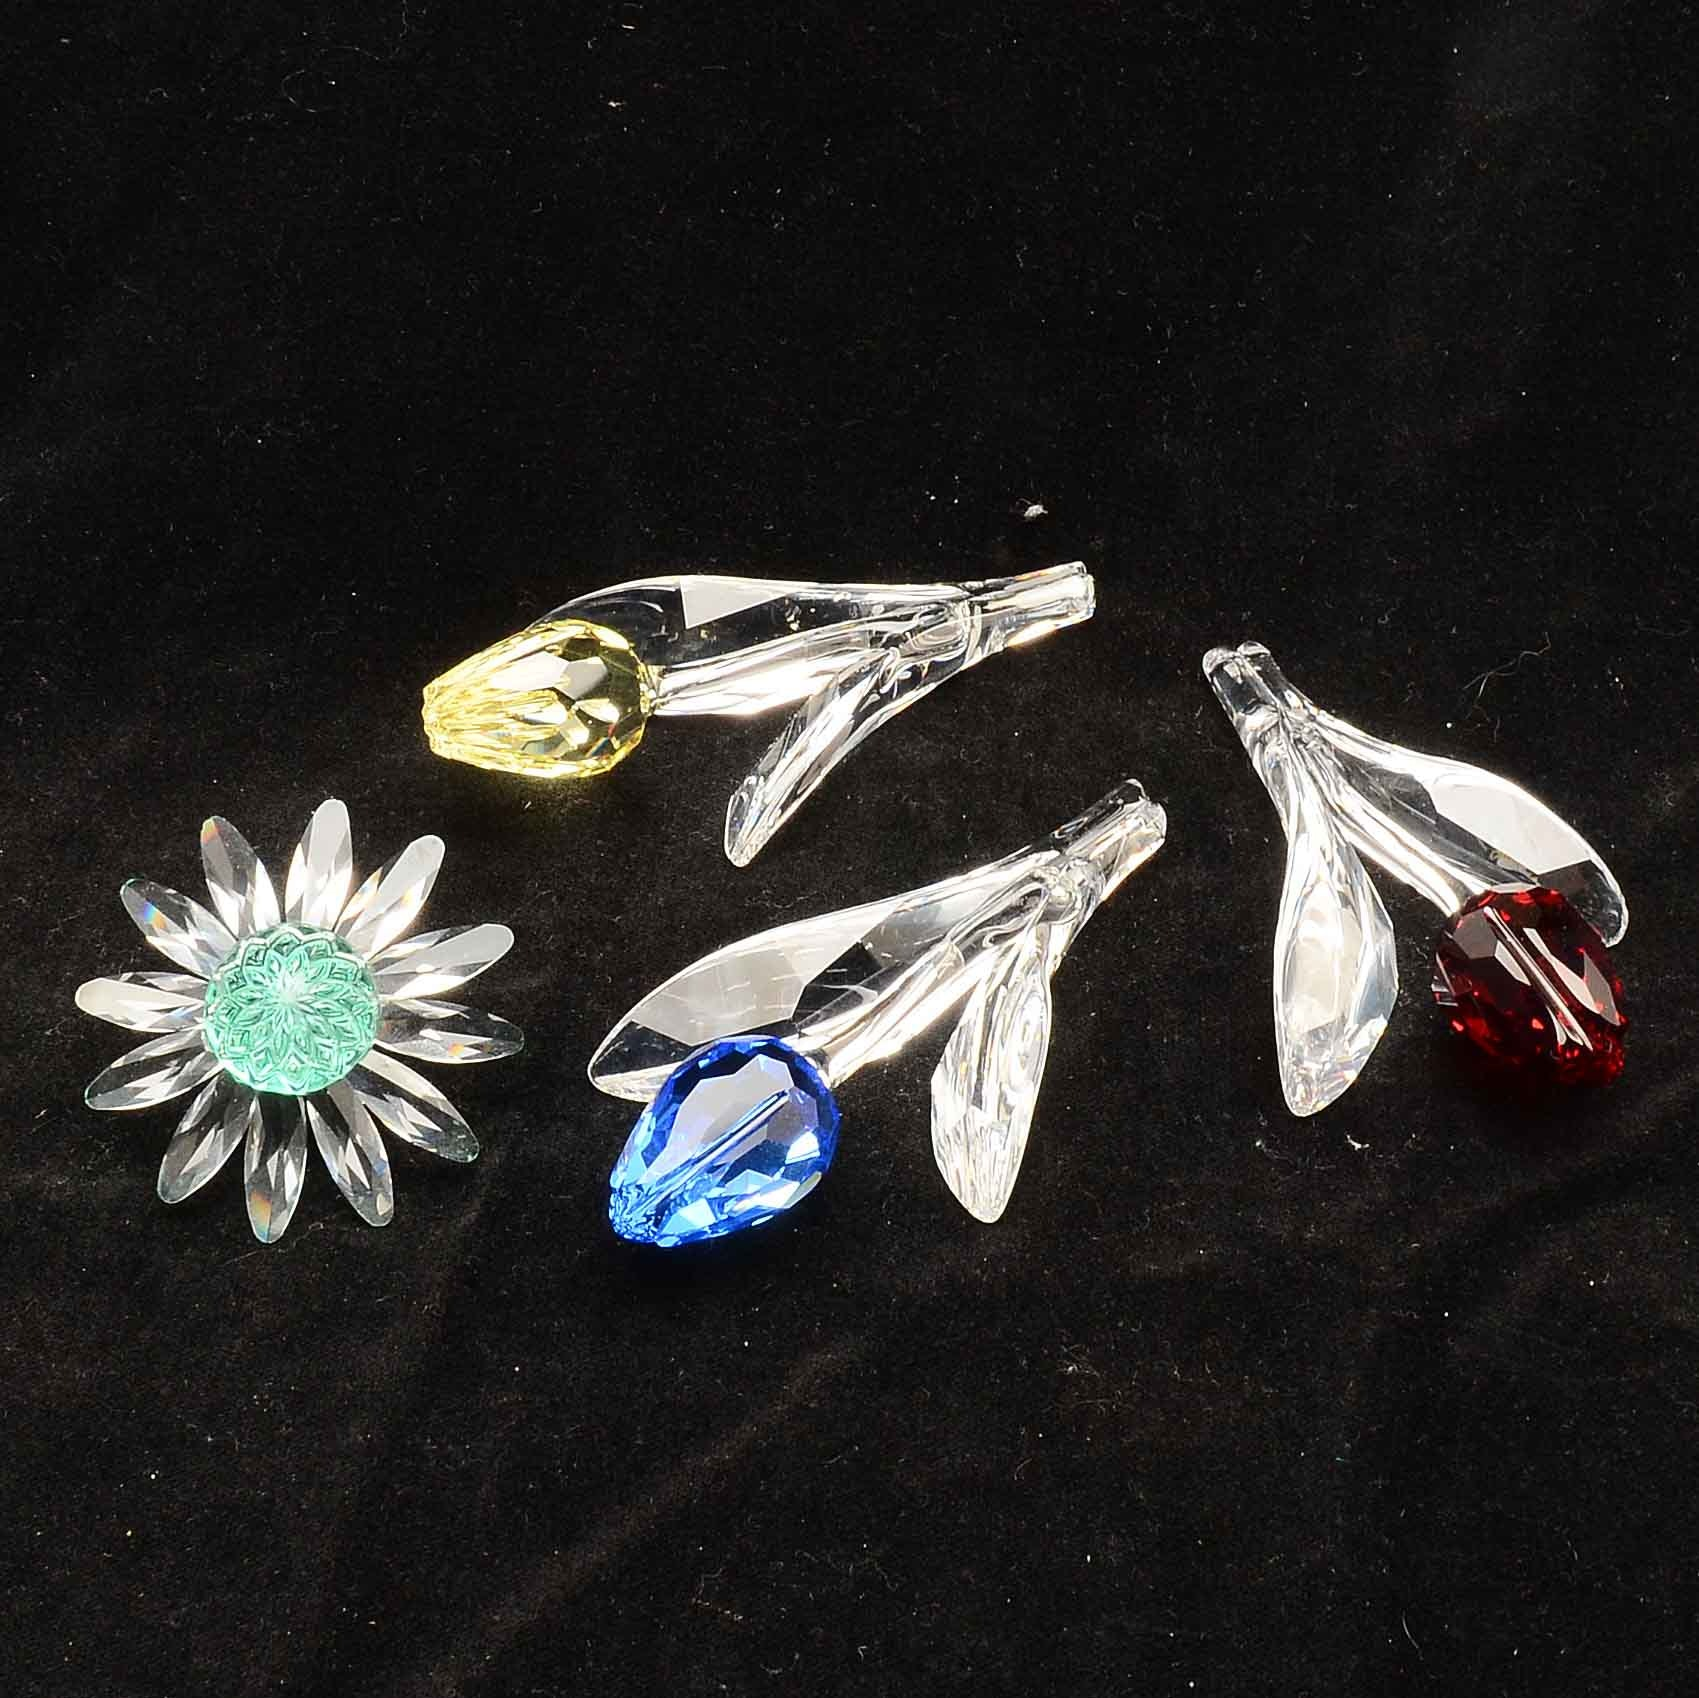 Swarovski Collectors Society Crystal Renewal Gift Flowers